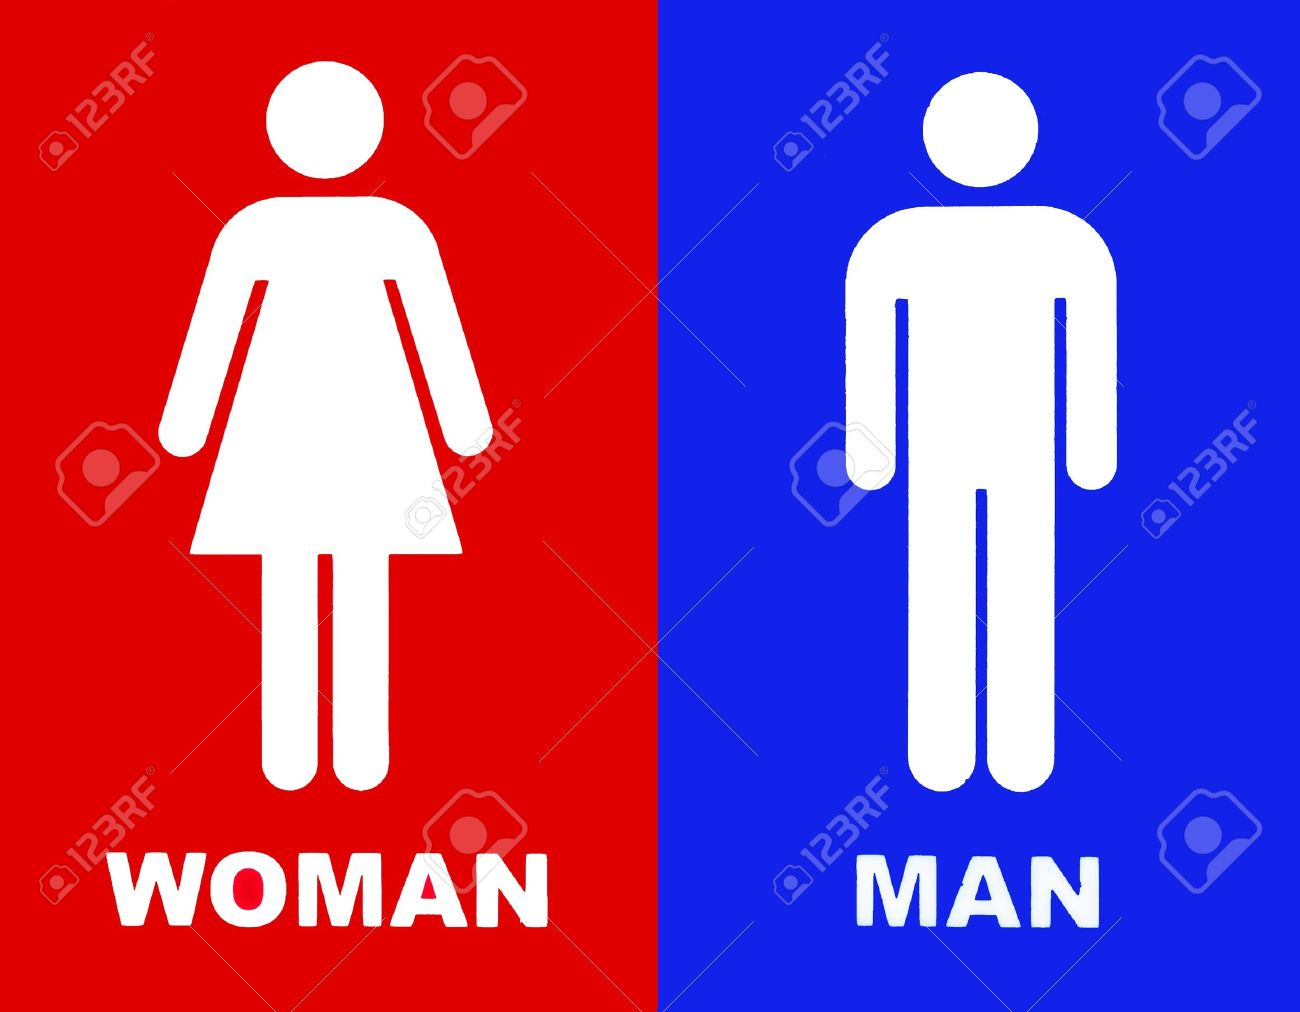 Art of a Toilet sign in red and blue Stock Photo   15996838. Art Of A Toilet Sign In Red And Blue Stock Photo  Picture And